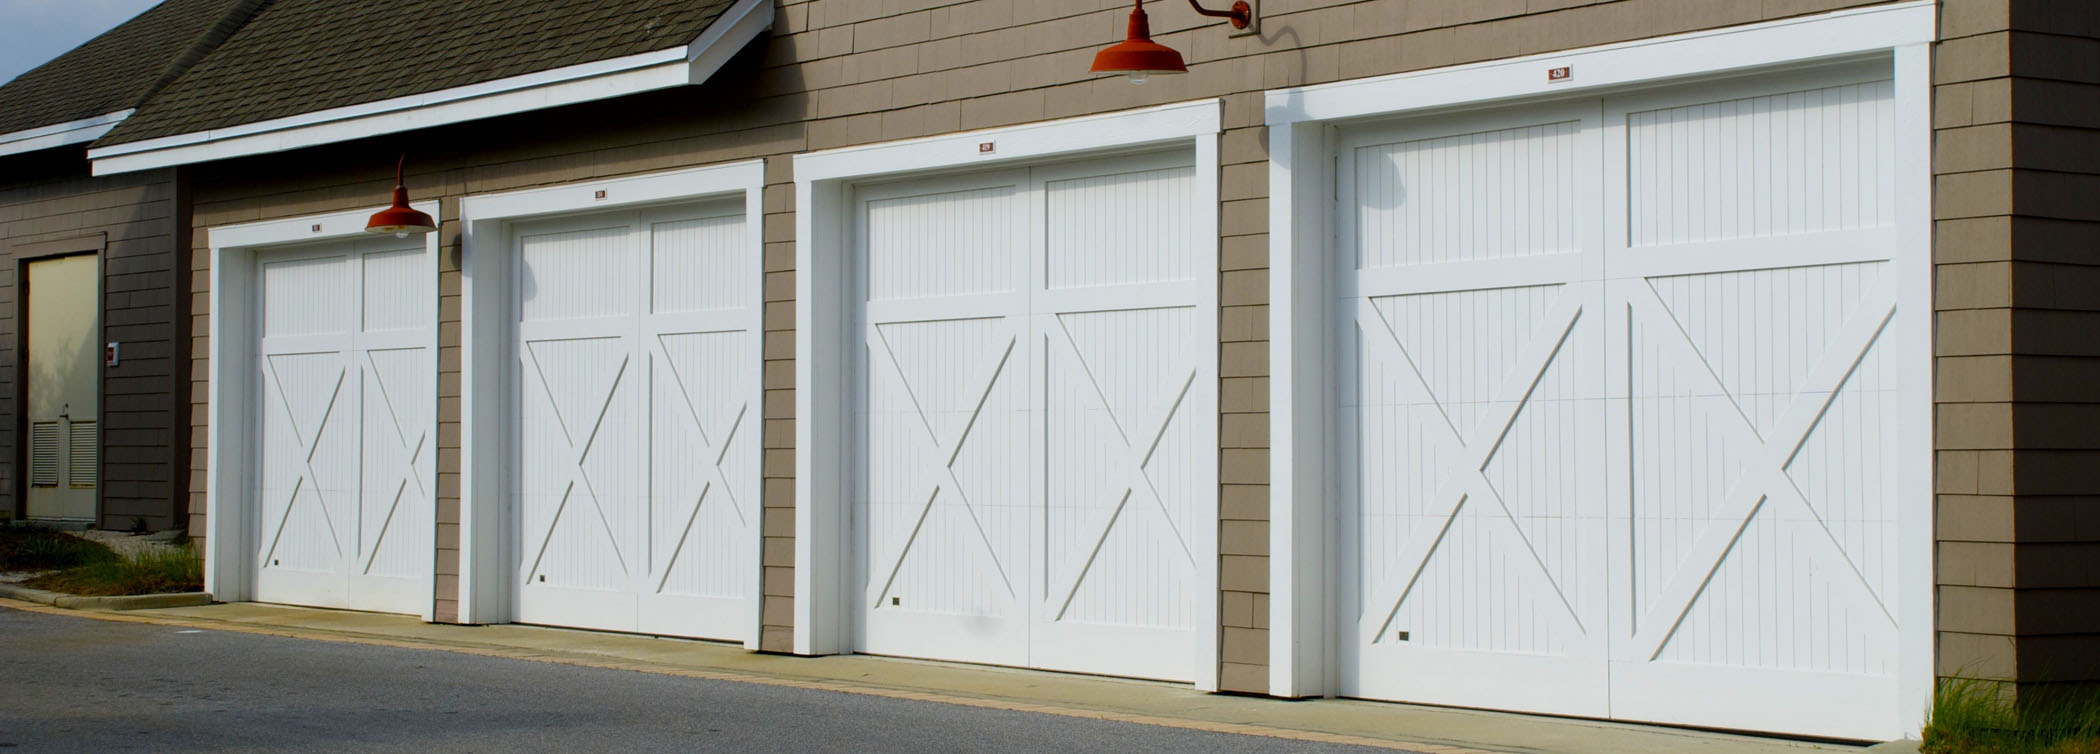 Garage Door Repair Okotoks | Overhead Door Service Okotoks | Installation  Serving Okotoks High River, Nanton, Black Diamond